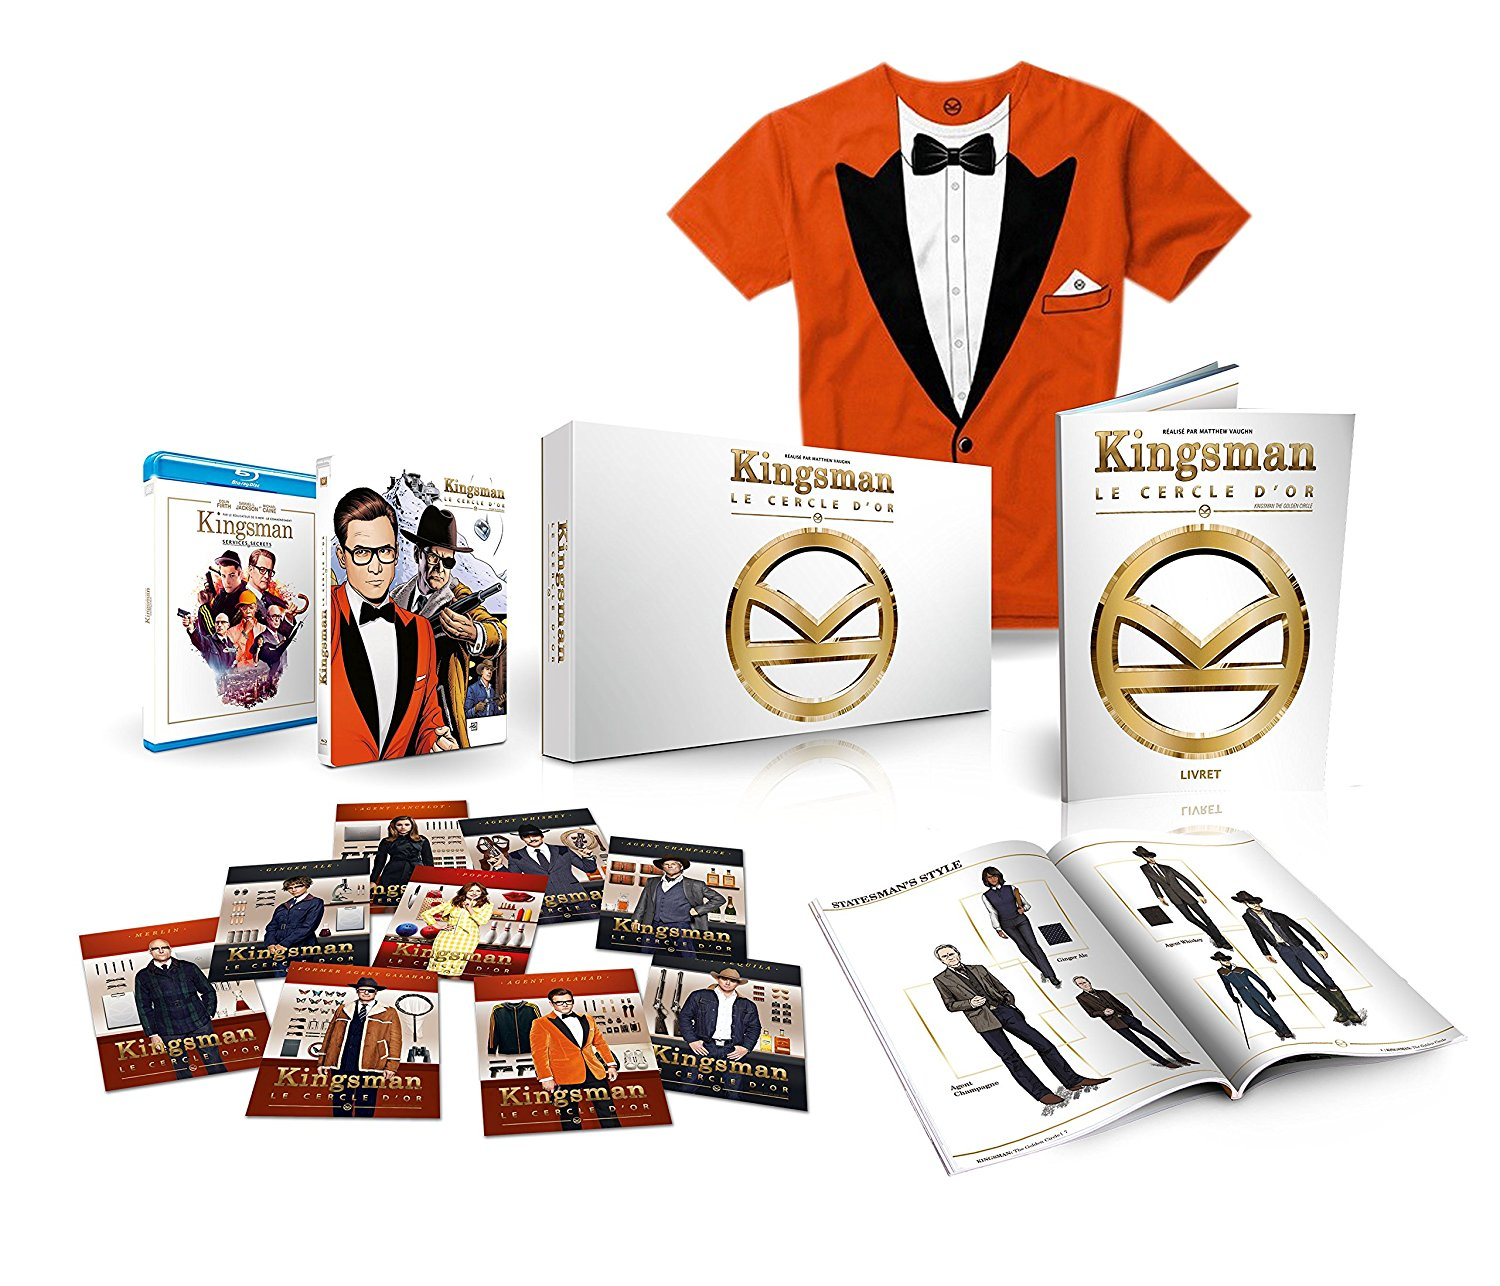 Kingsman cercle collector steelbook